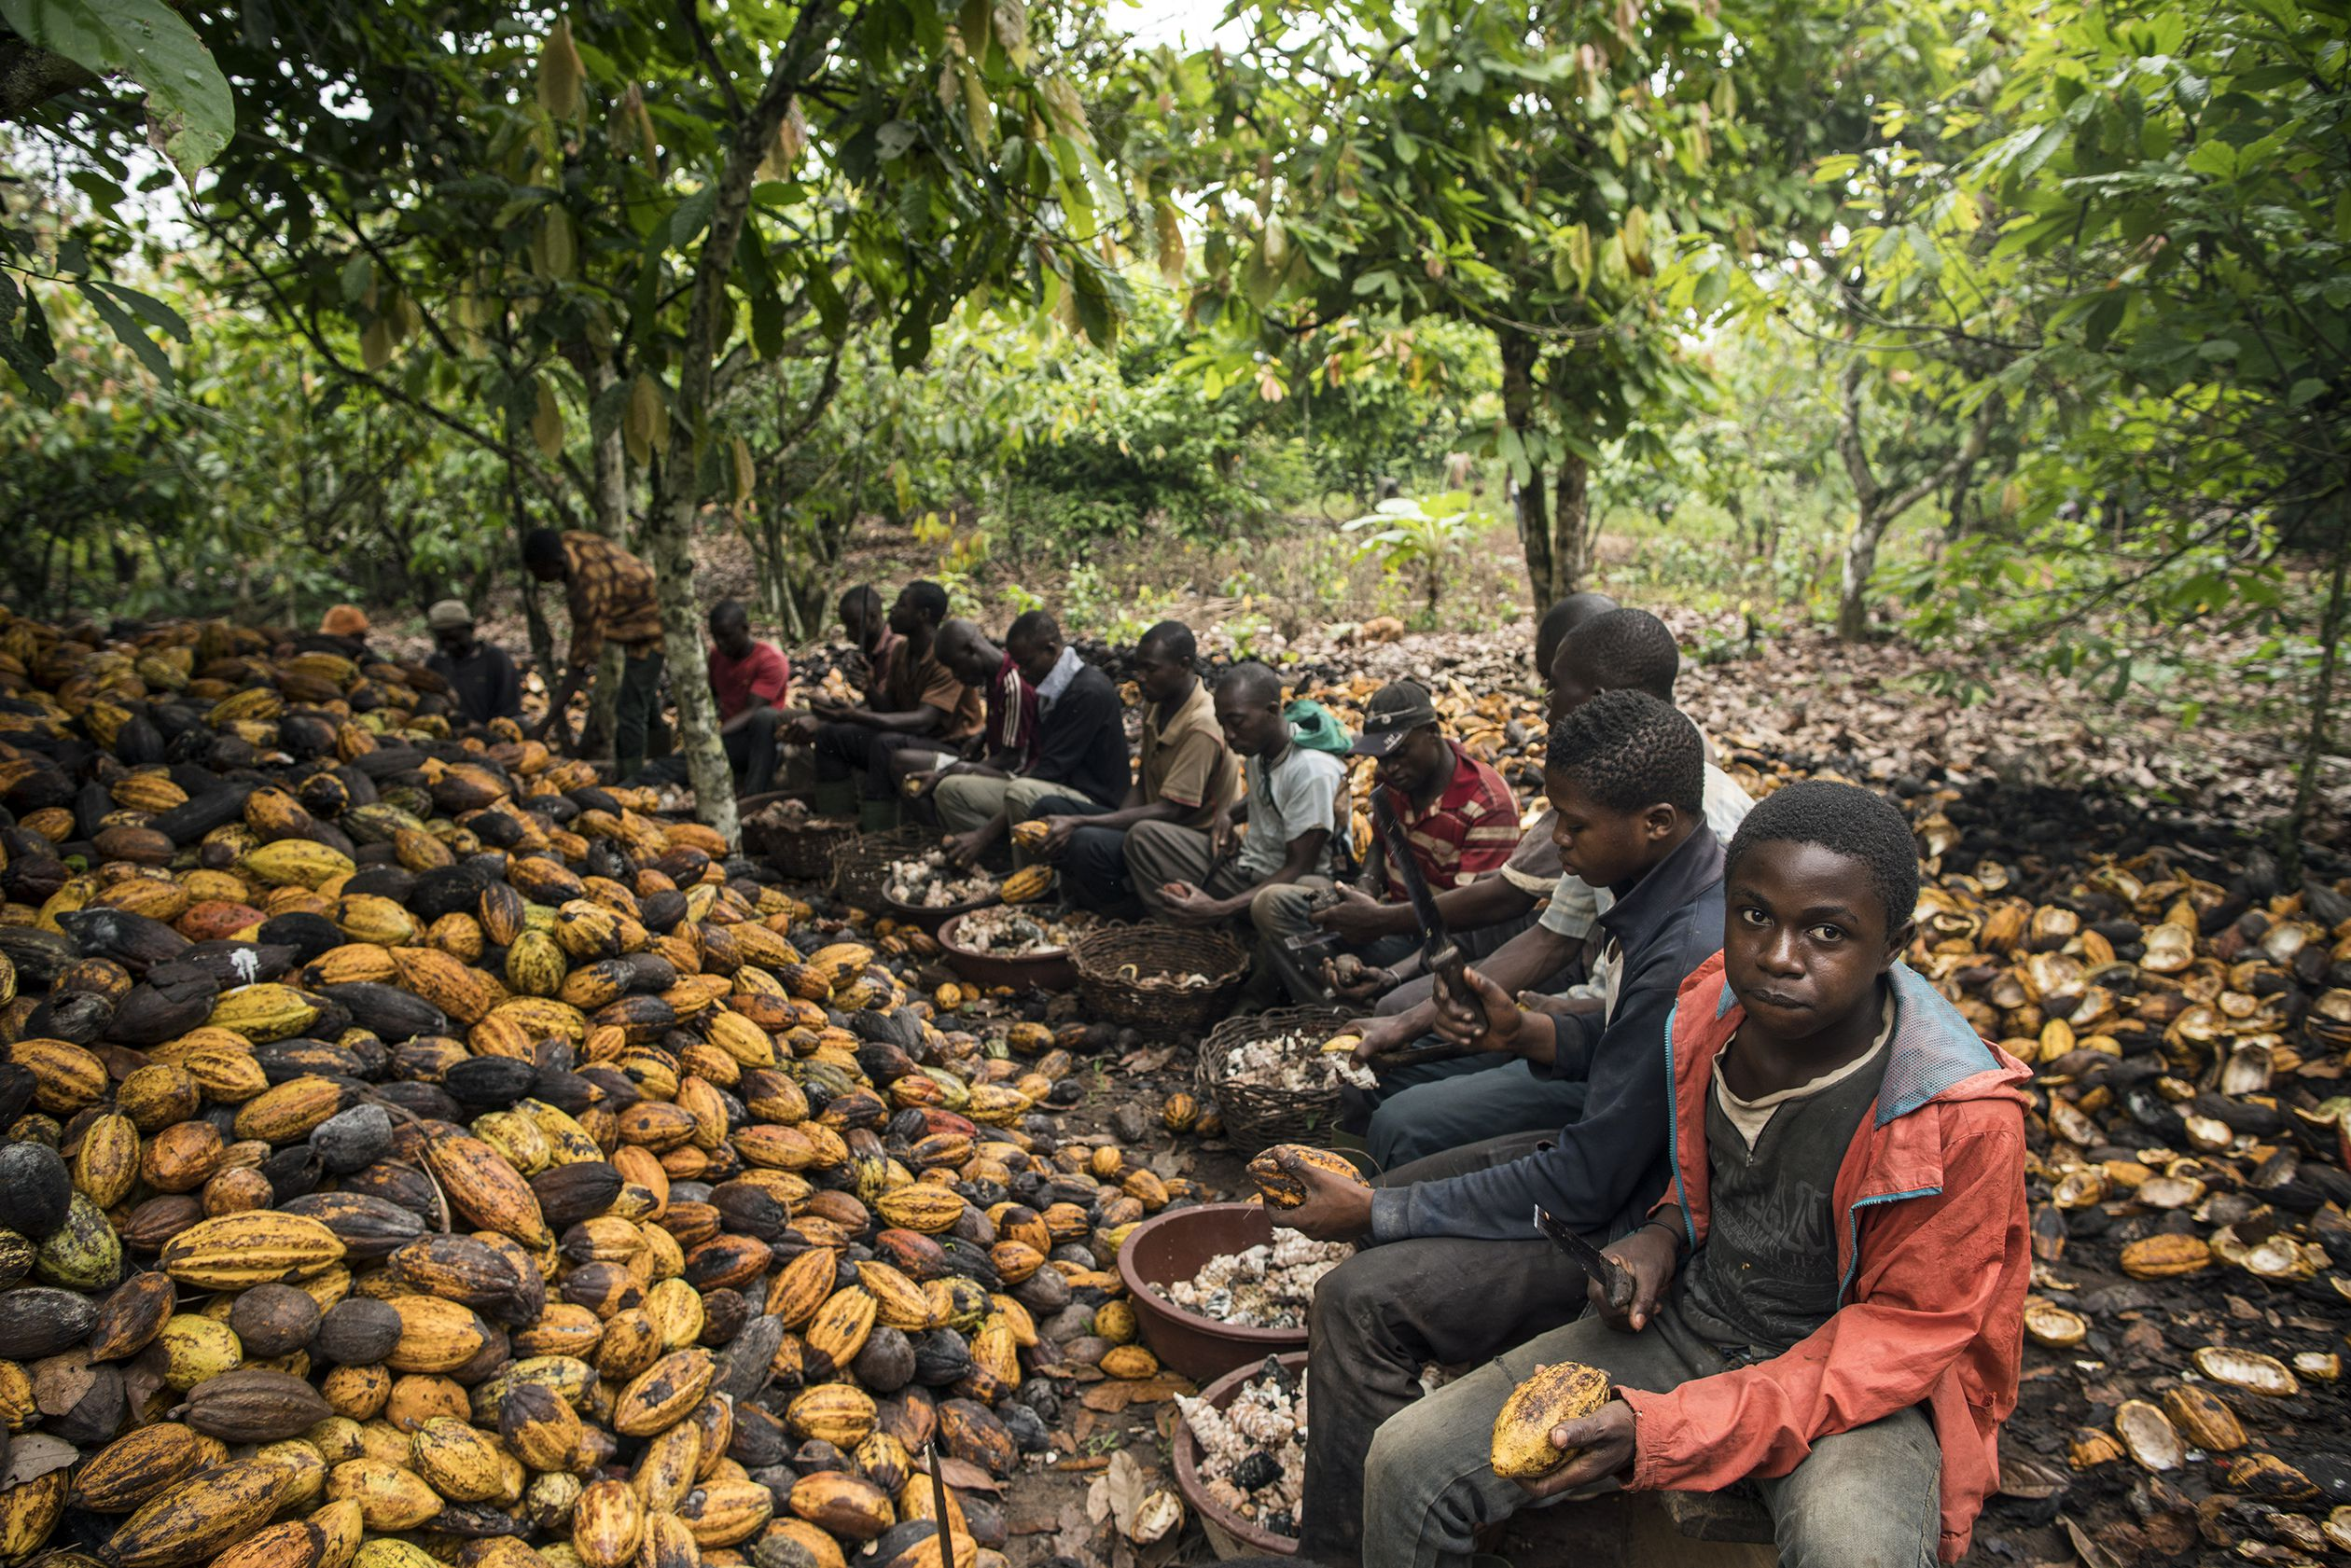 Cocoa farm in Cote D'Ivoire | Photo © Benjamin Lowy